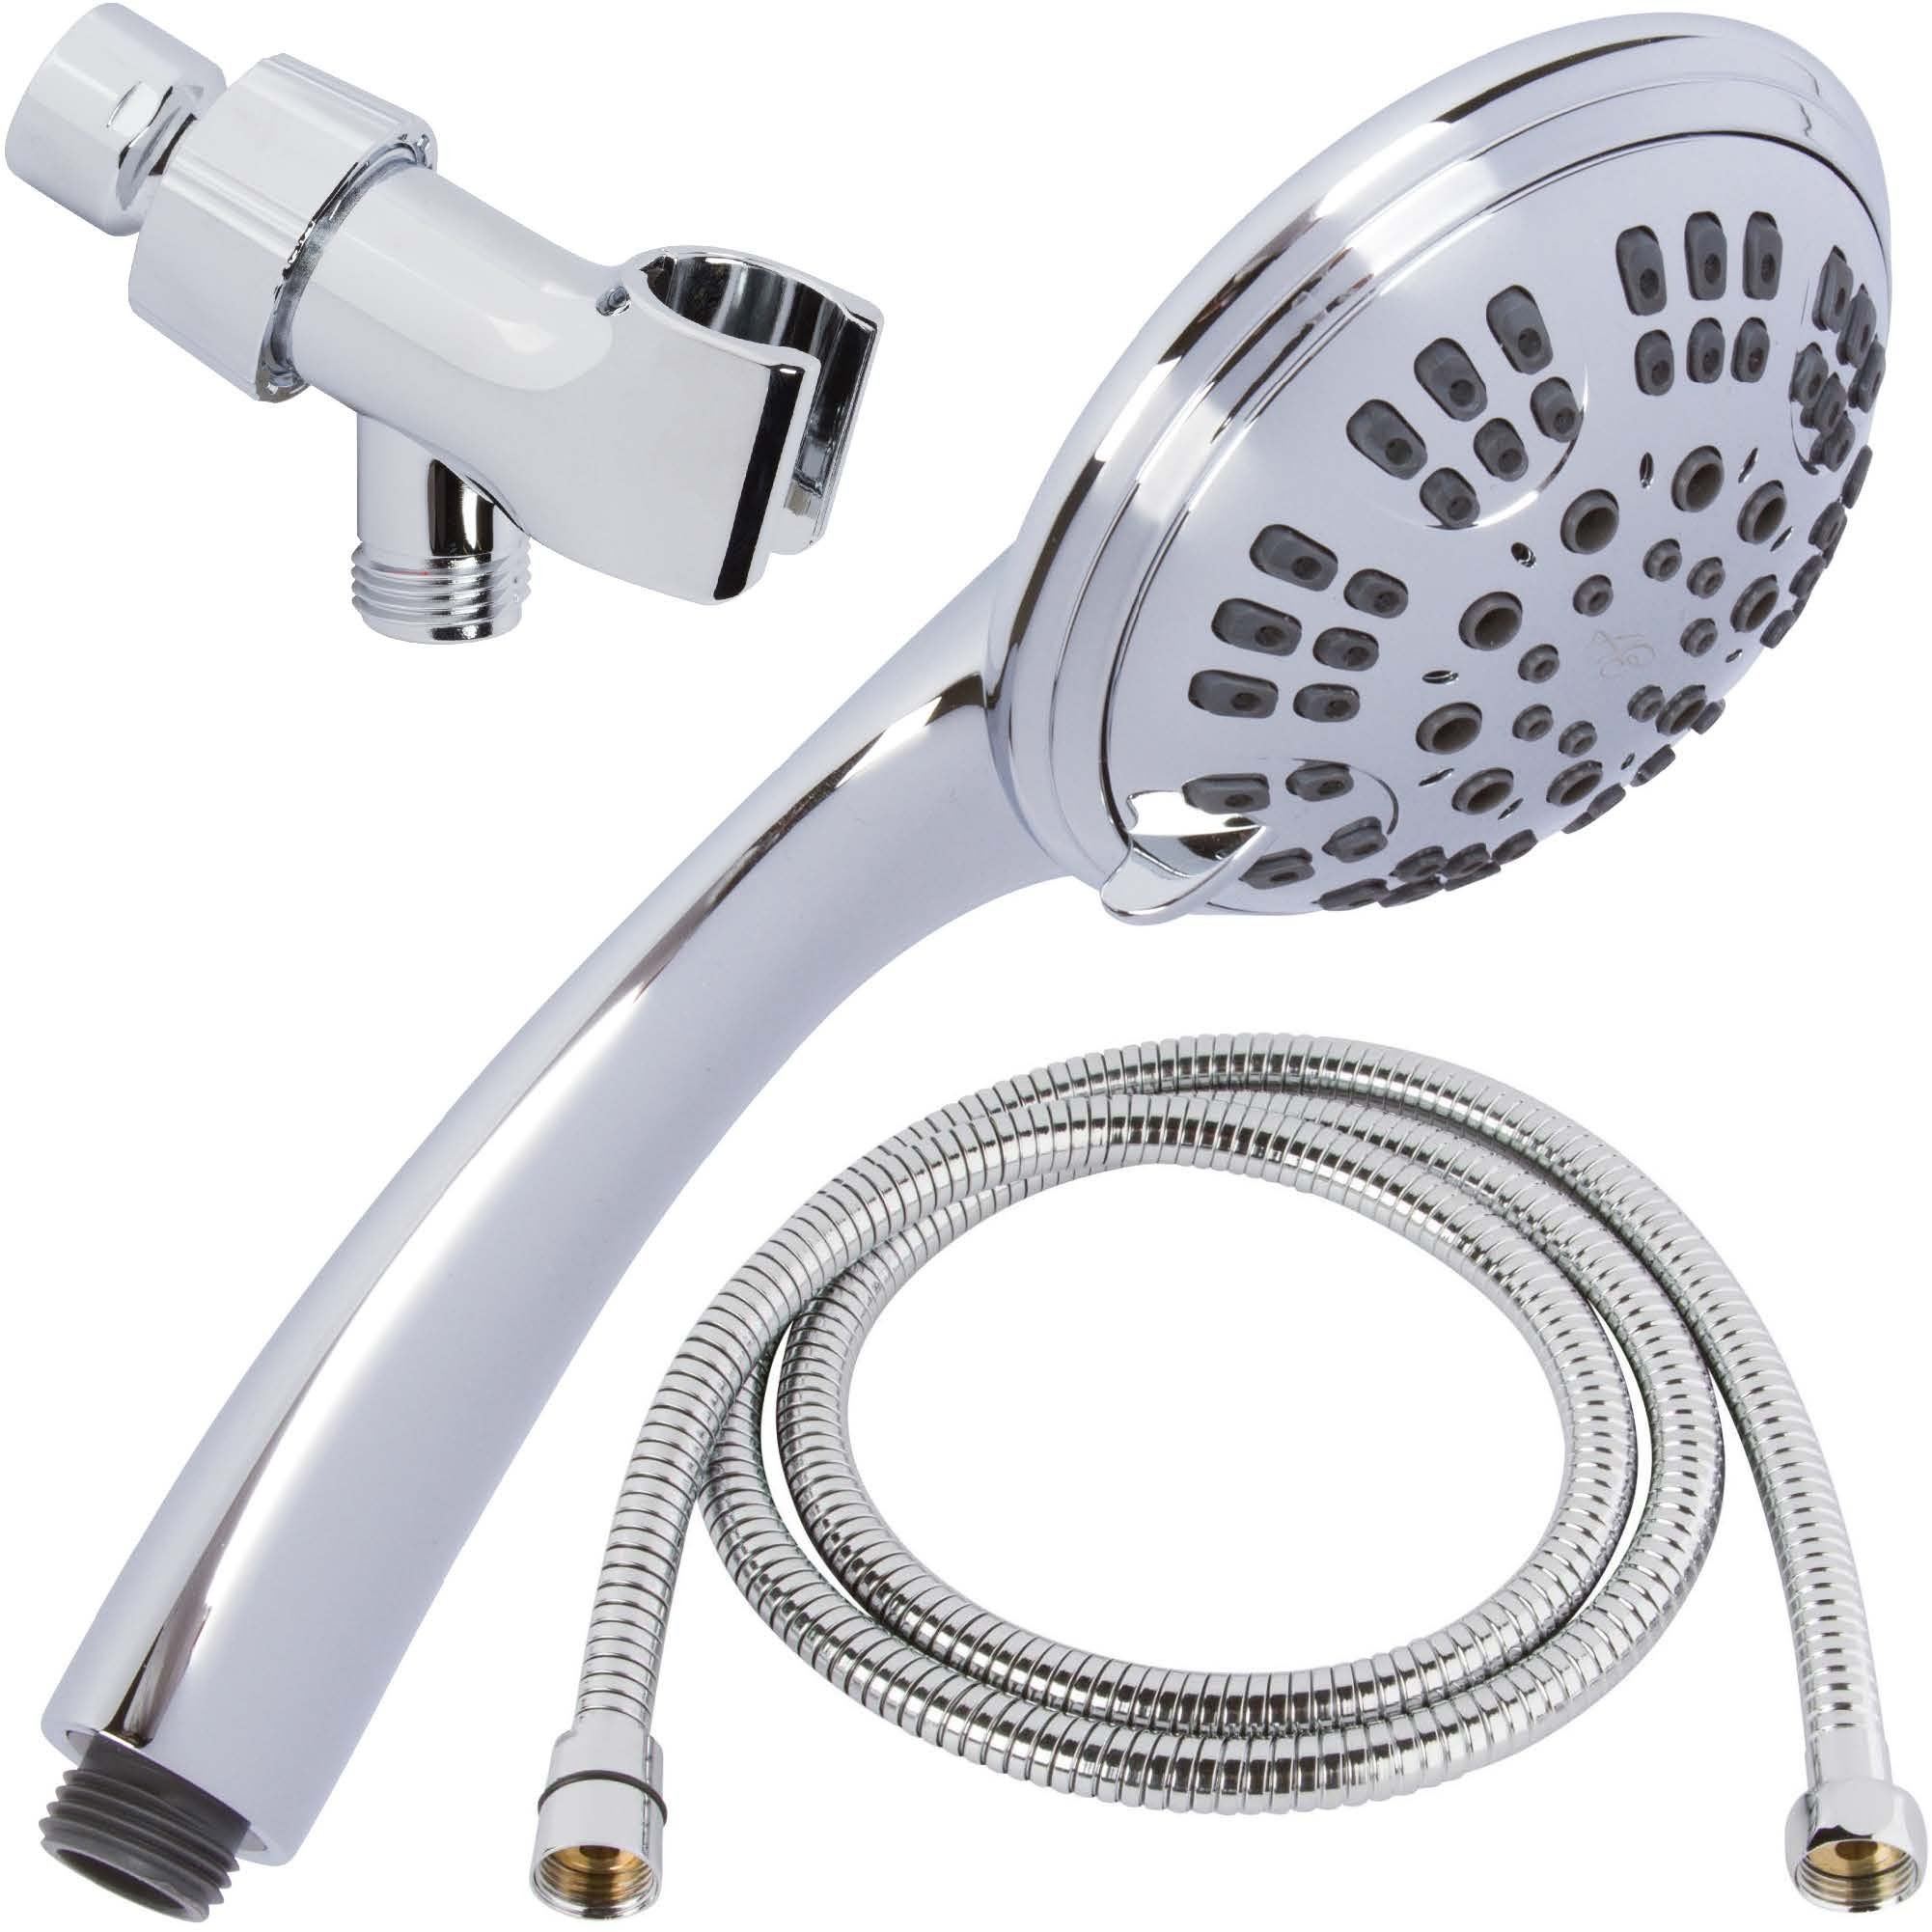 drill on all stainless cheap get with steel shower quotations bar alibaba free shopping com head guides at chrome slide combo speakman deals find line